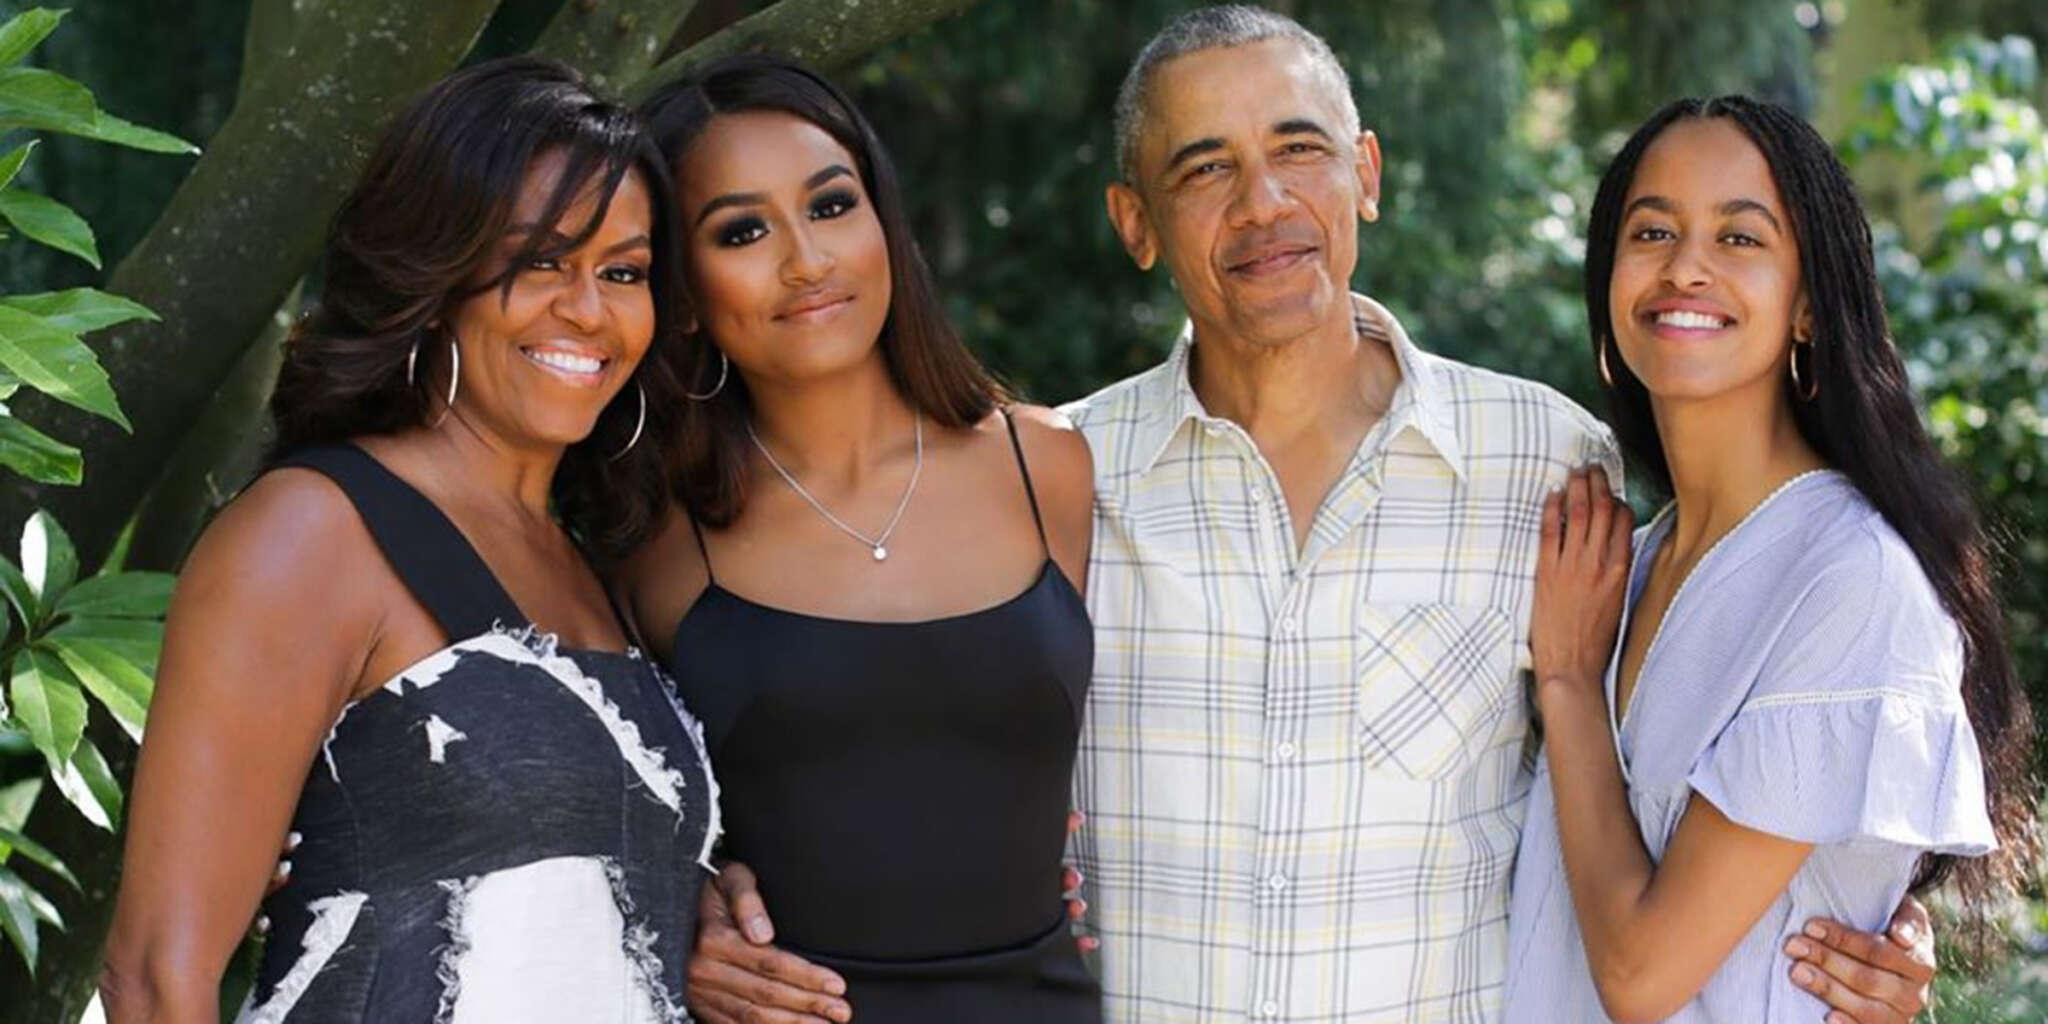 Michelle Obama Says Her Daughters With Barack Obama Are Really Opinionated And They 'Love That!'